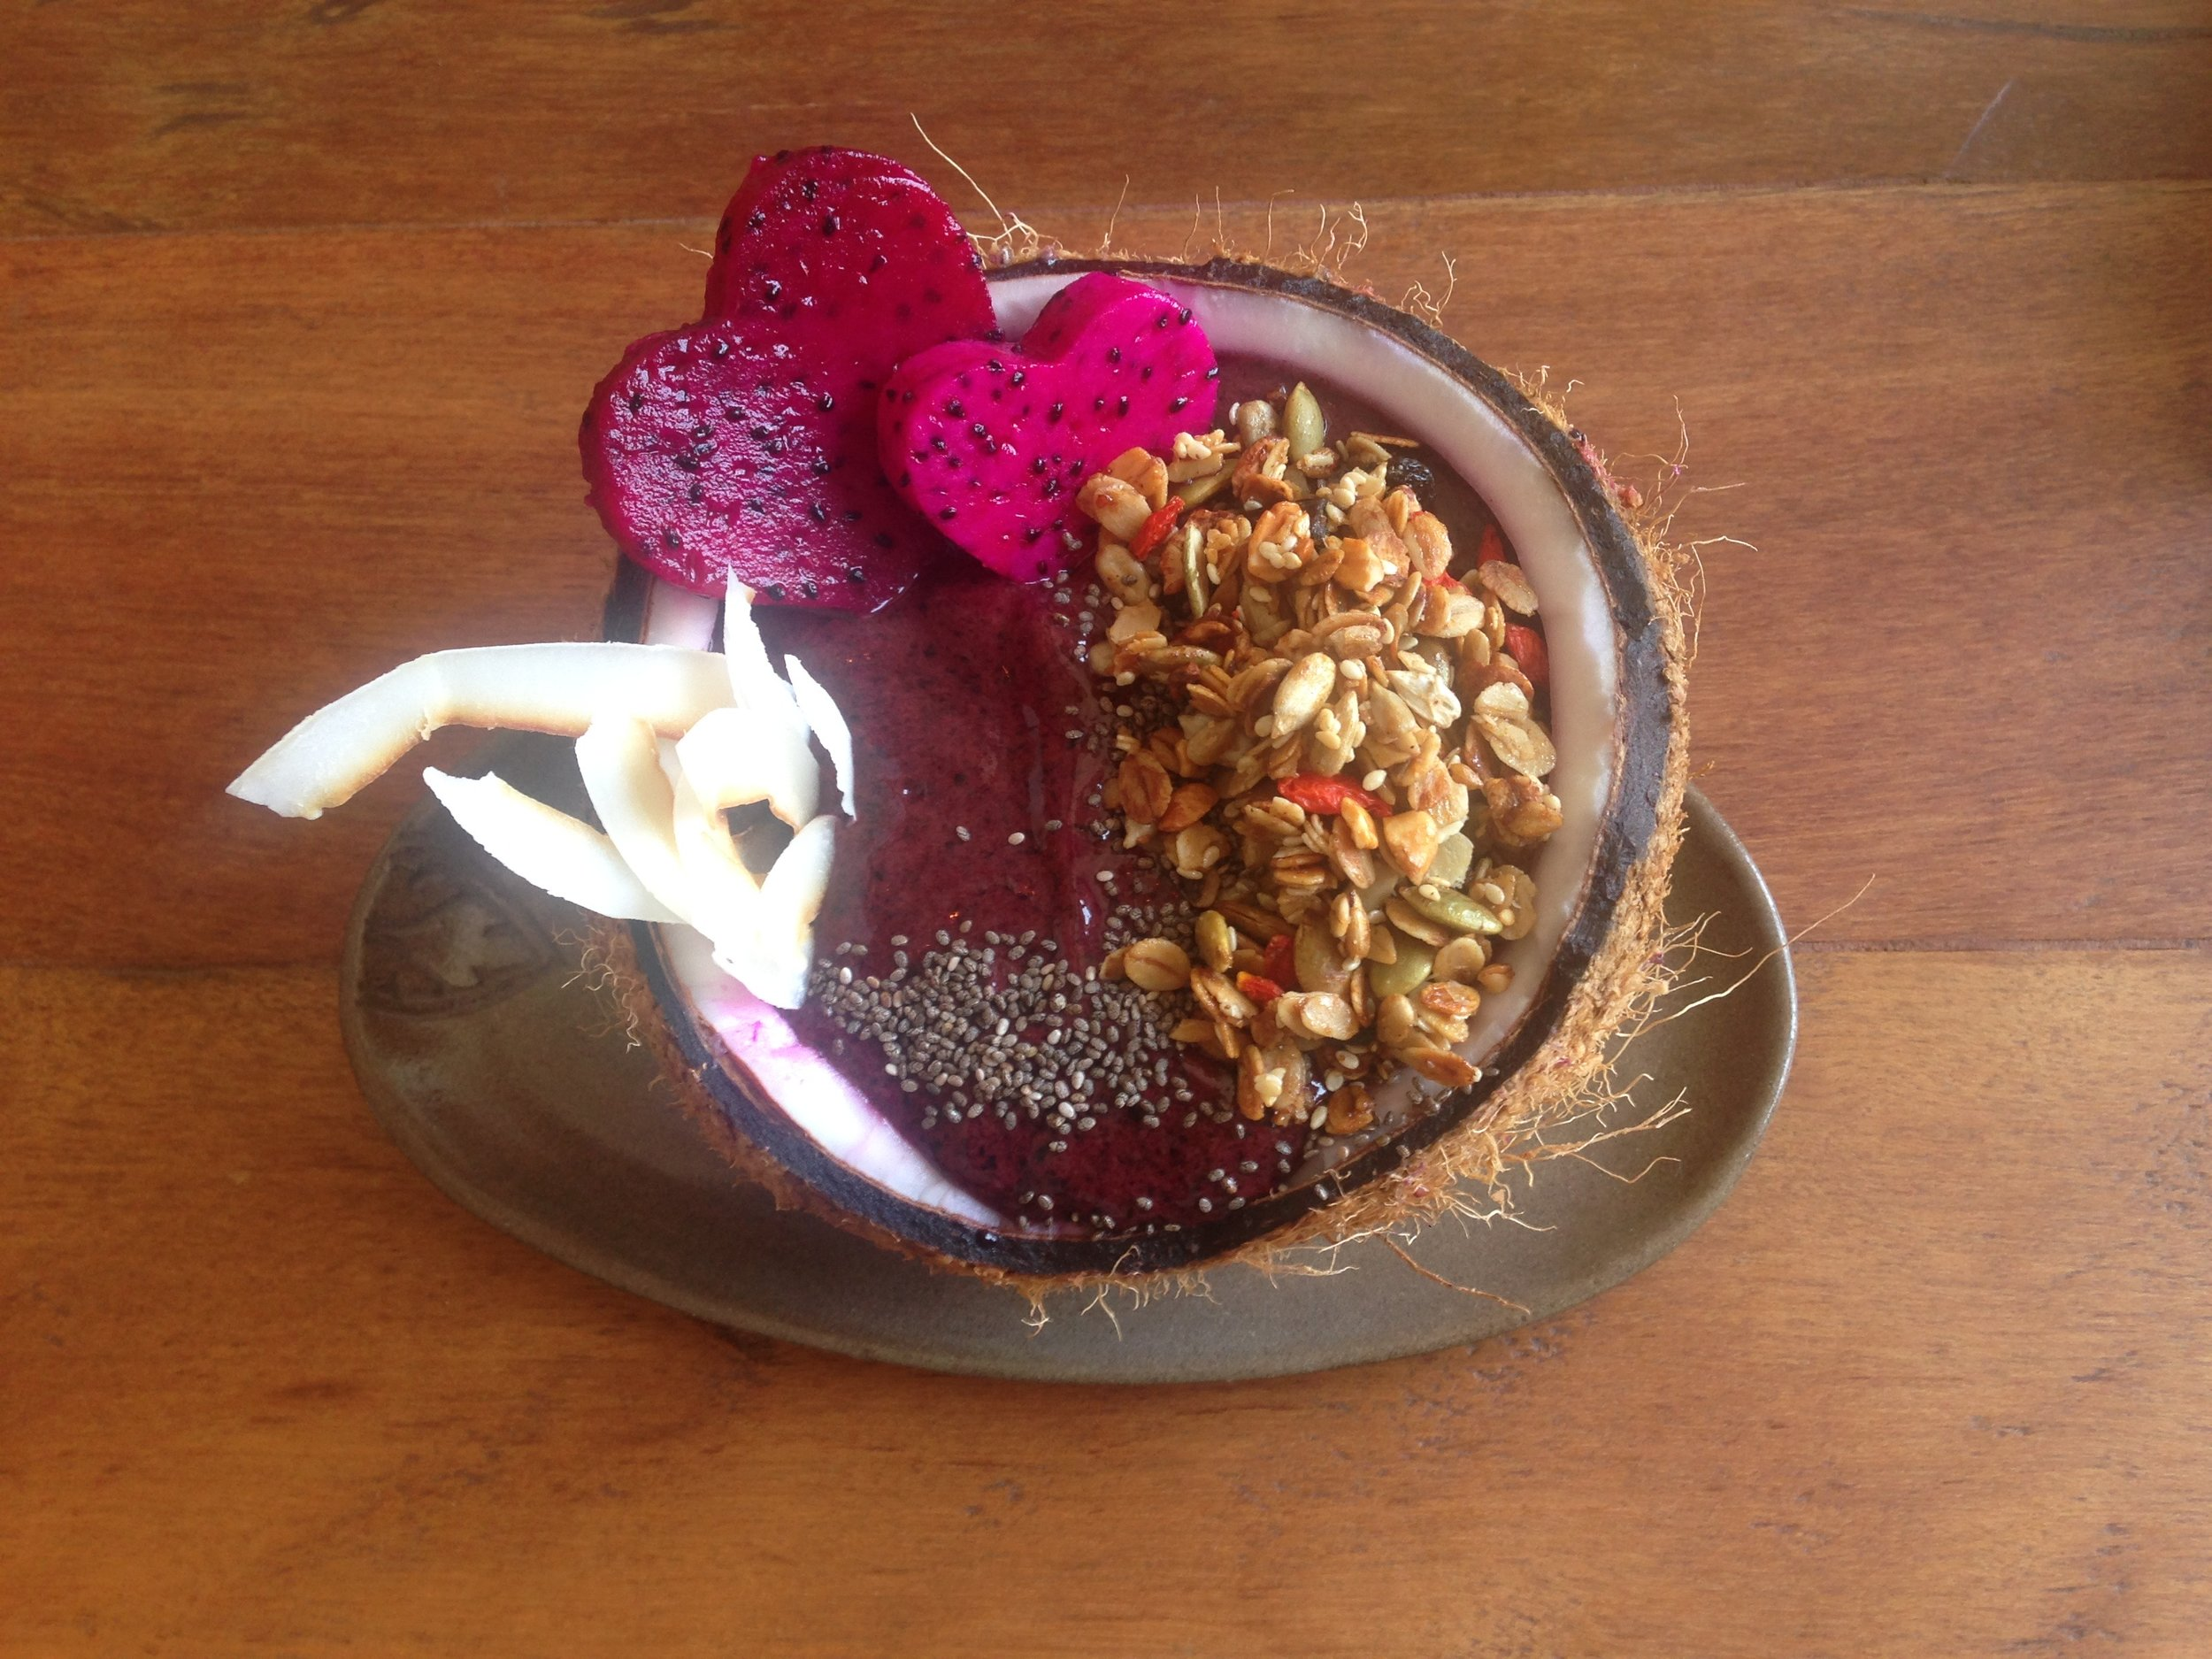 Granola and coconut shreds soaked in an acai bowl